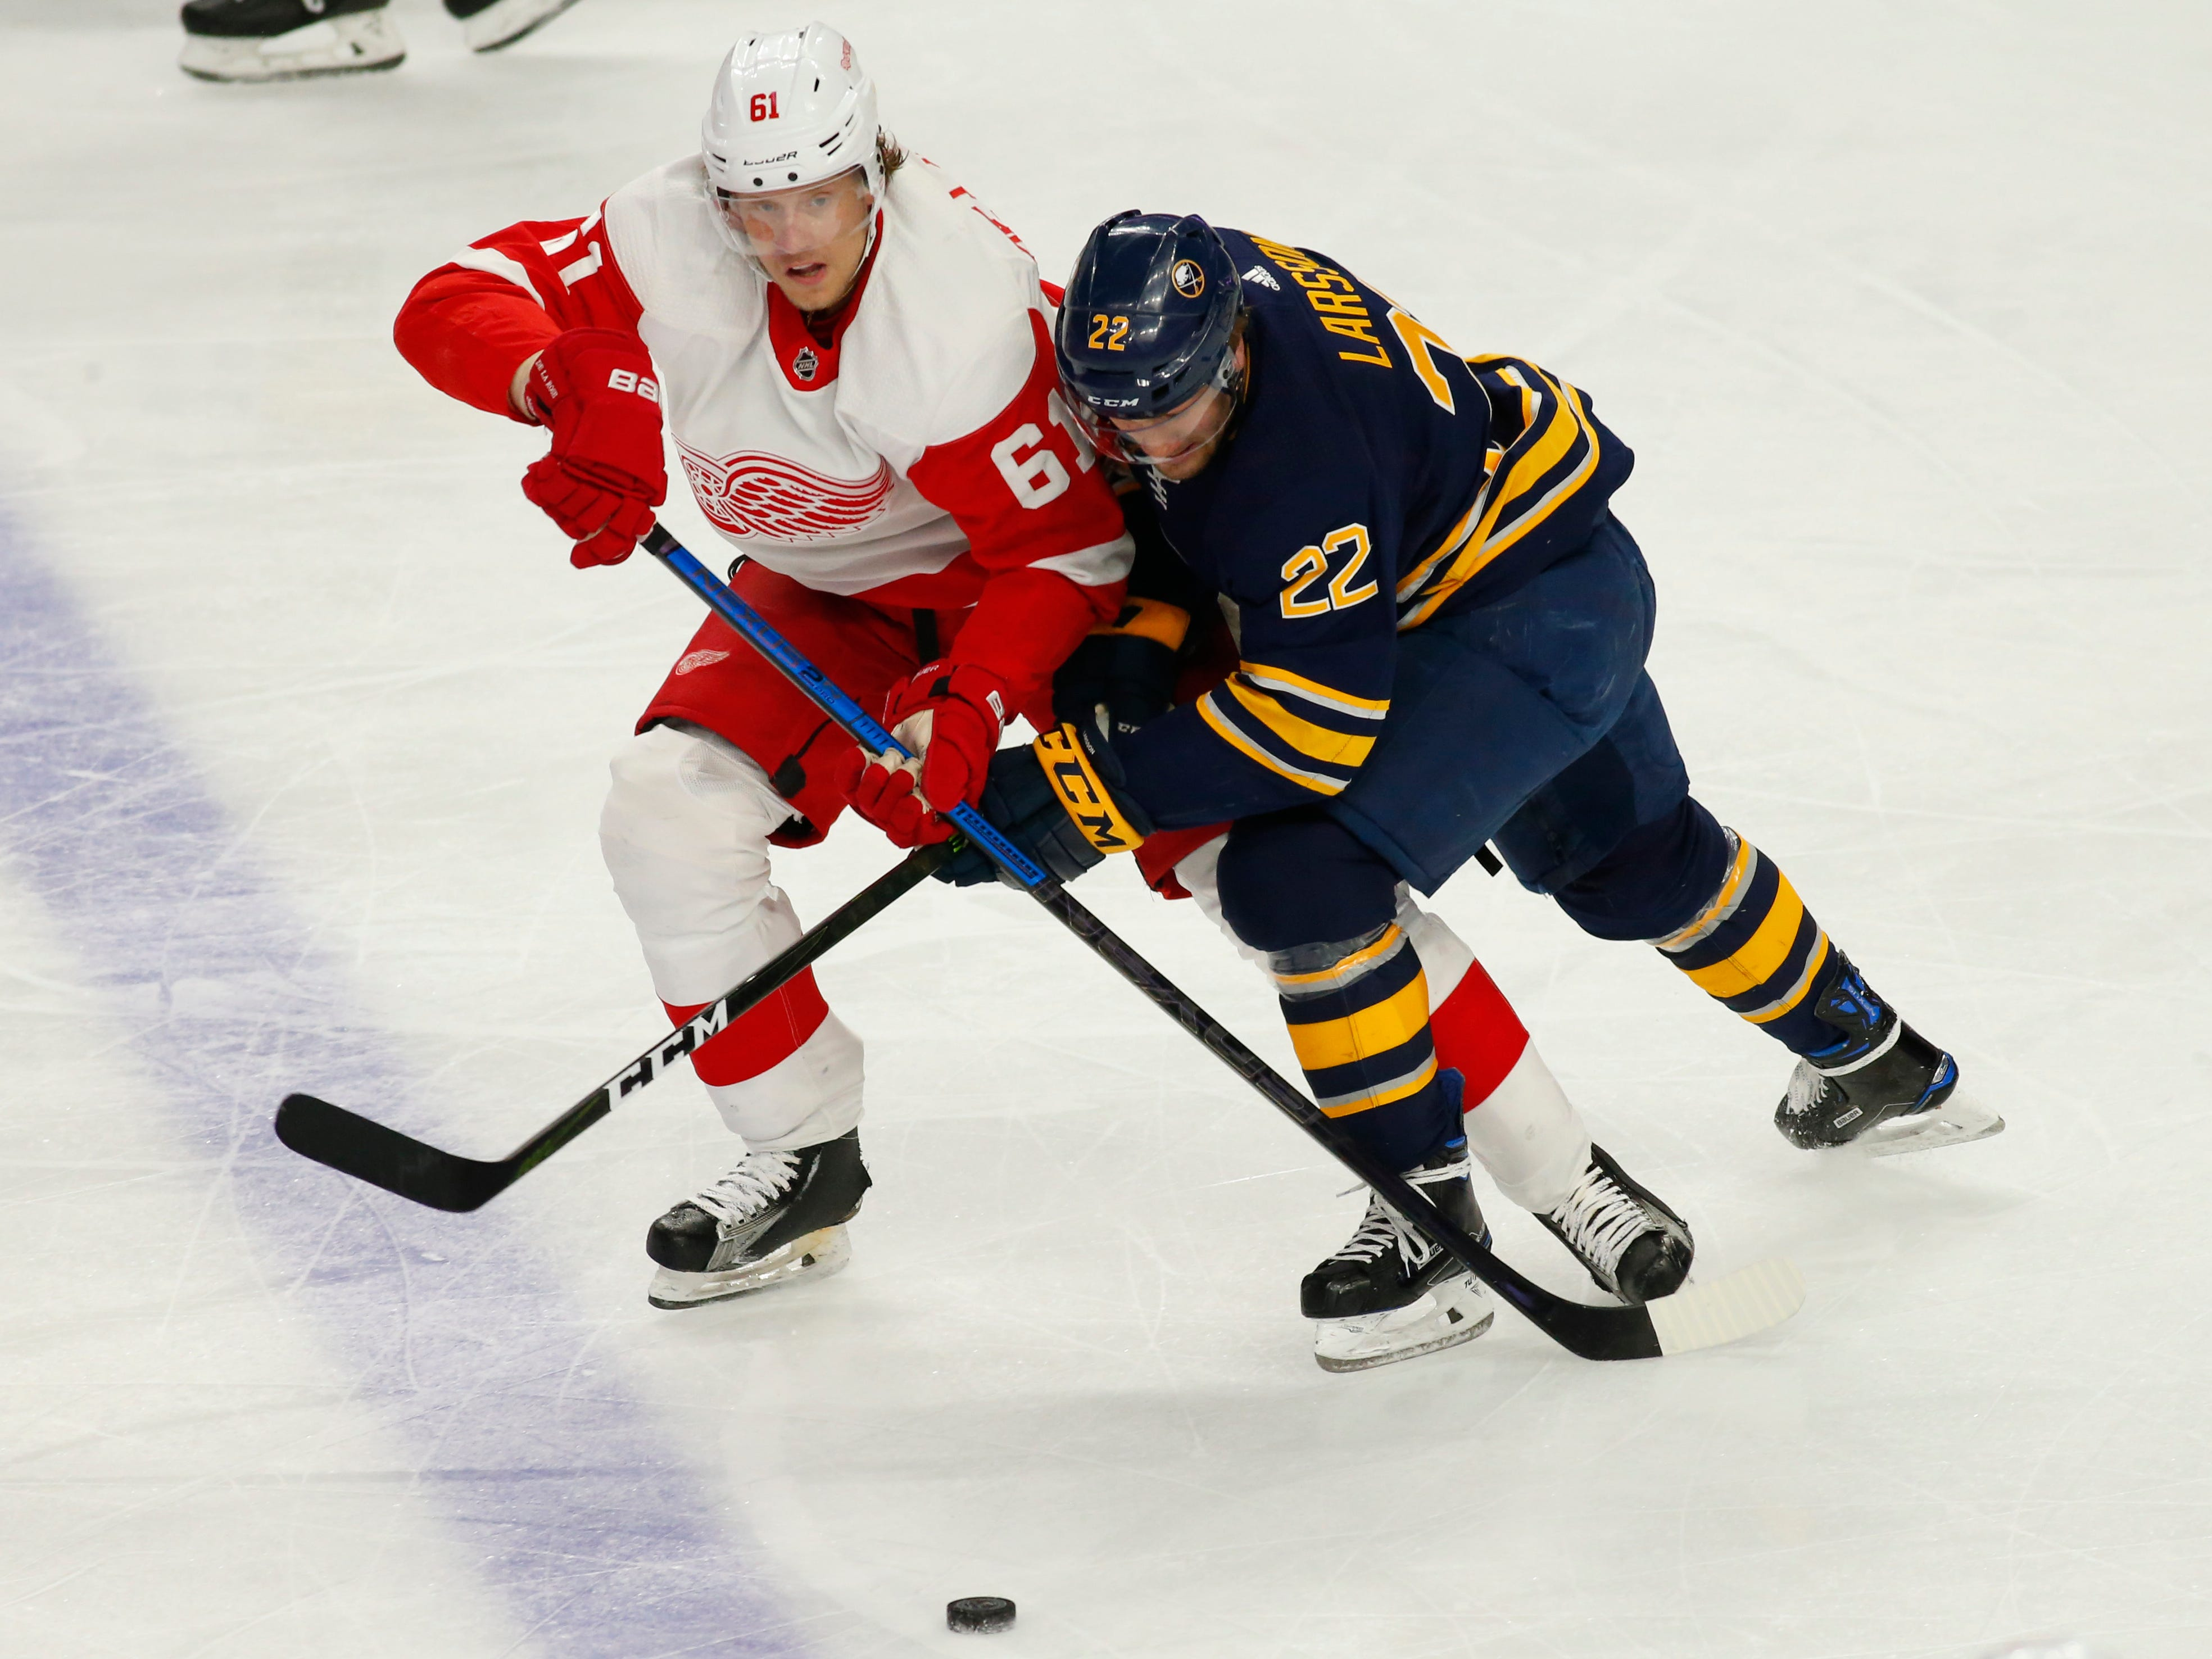 Sabres forward Johan Larsson and Red Wings forward Jacob de la Rose battle for the puck during the first period on Saturday, Feb. 9, 2019, in Buffalo N.Y.